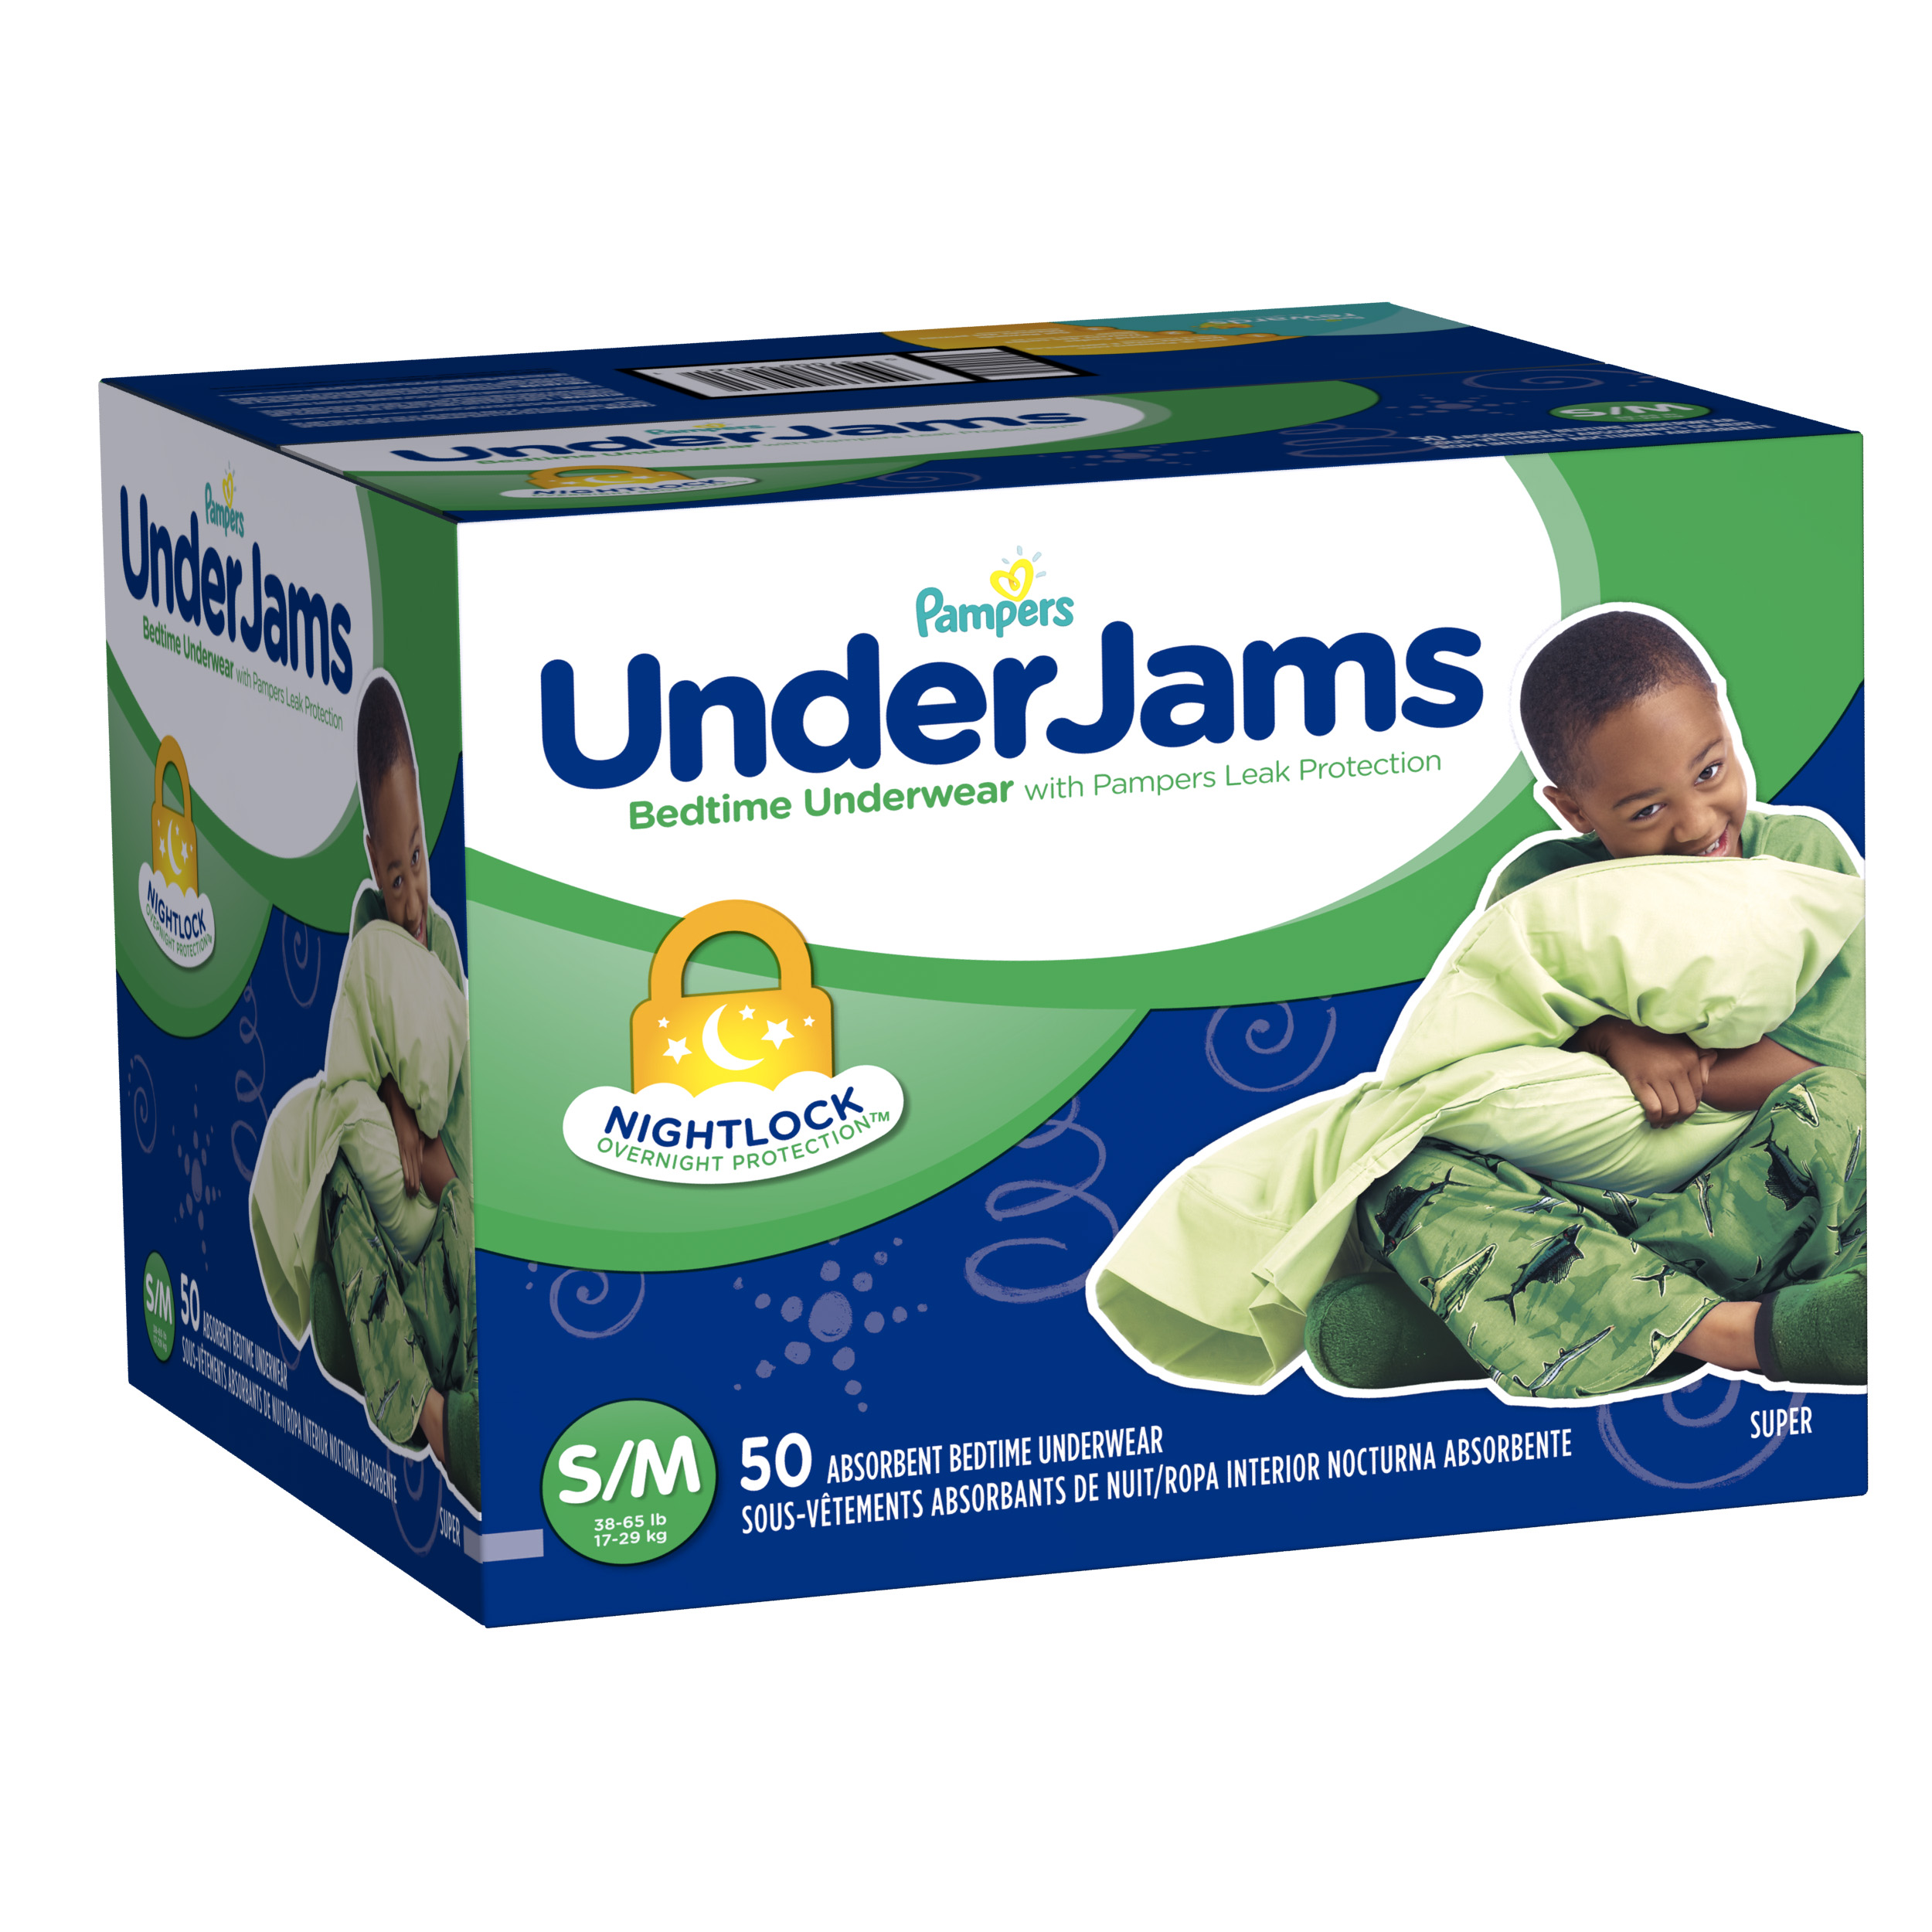 Pampers UnderJams Bedtime Underwear Boys Size S/M 50 count